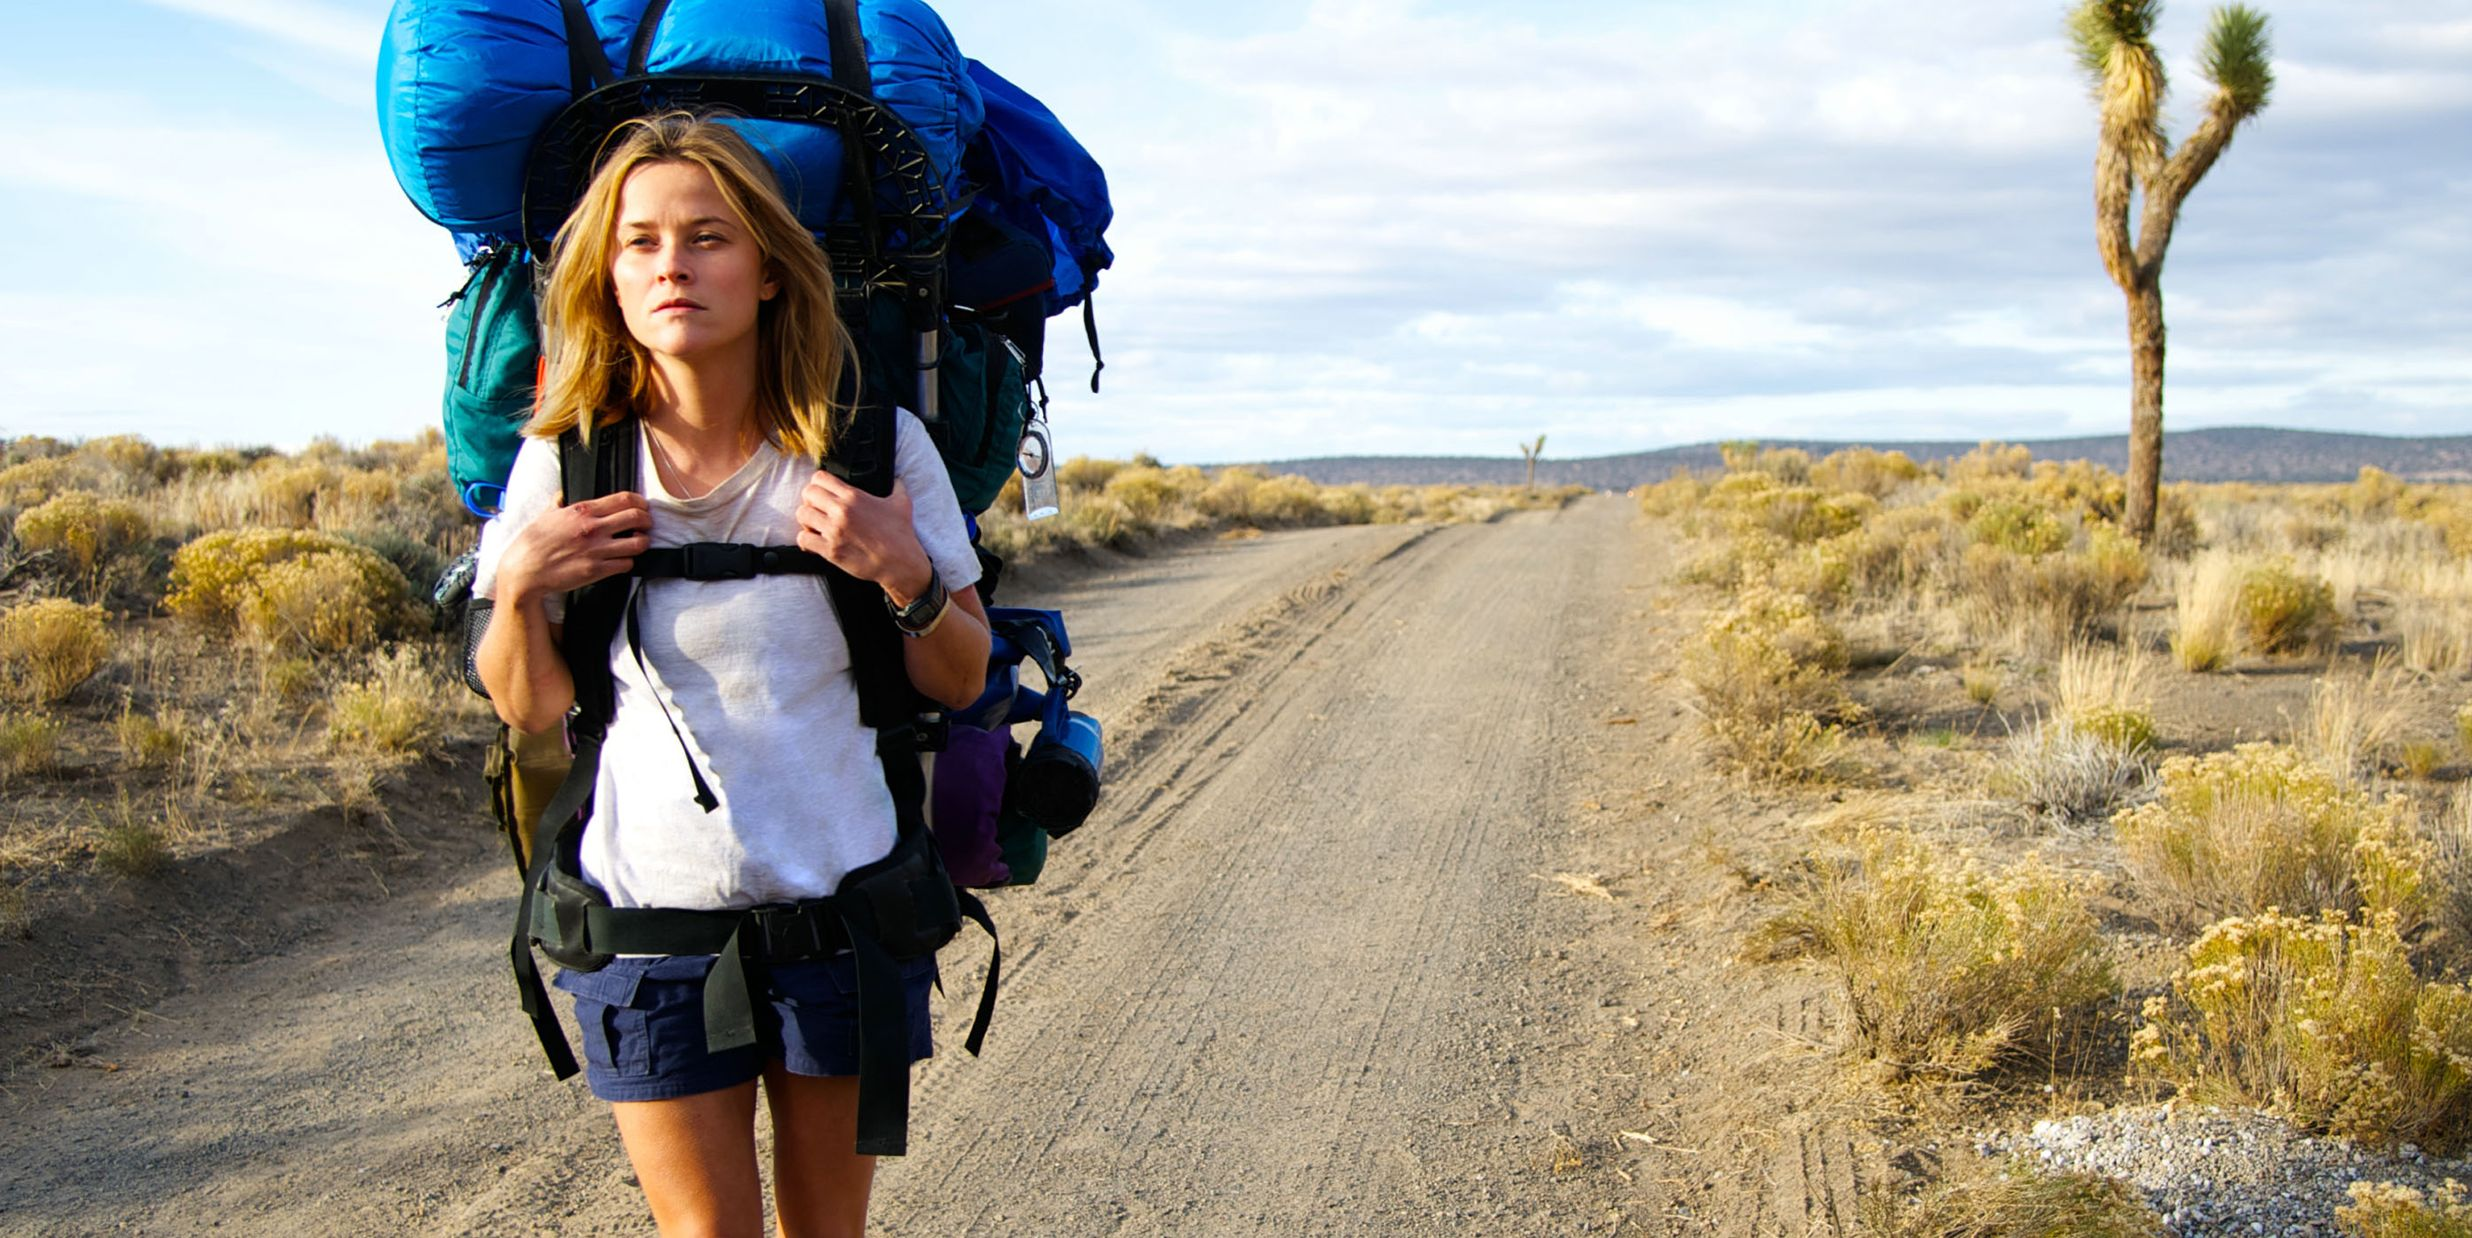 Reese Witherspoon in Wild, 2014